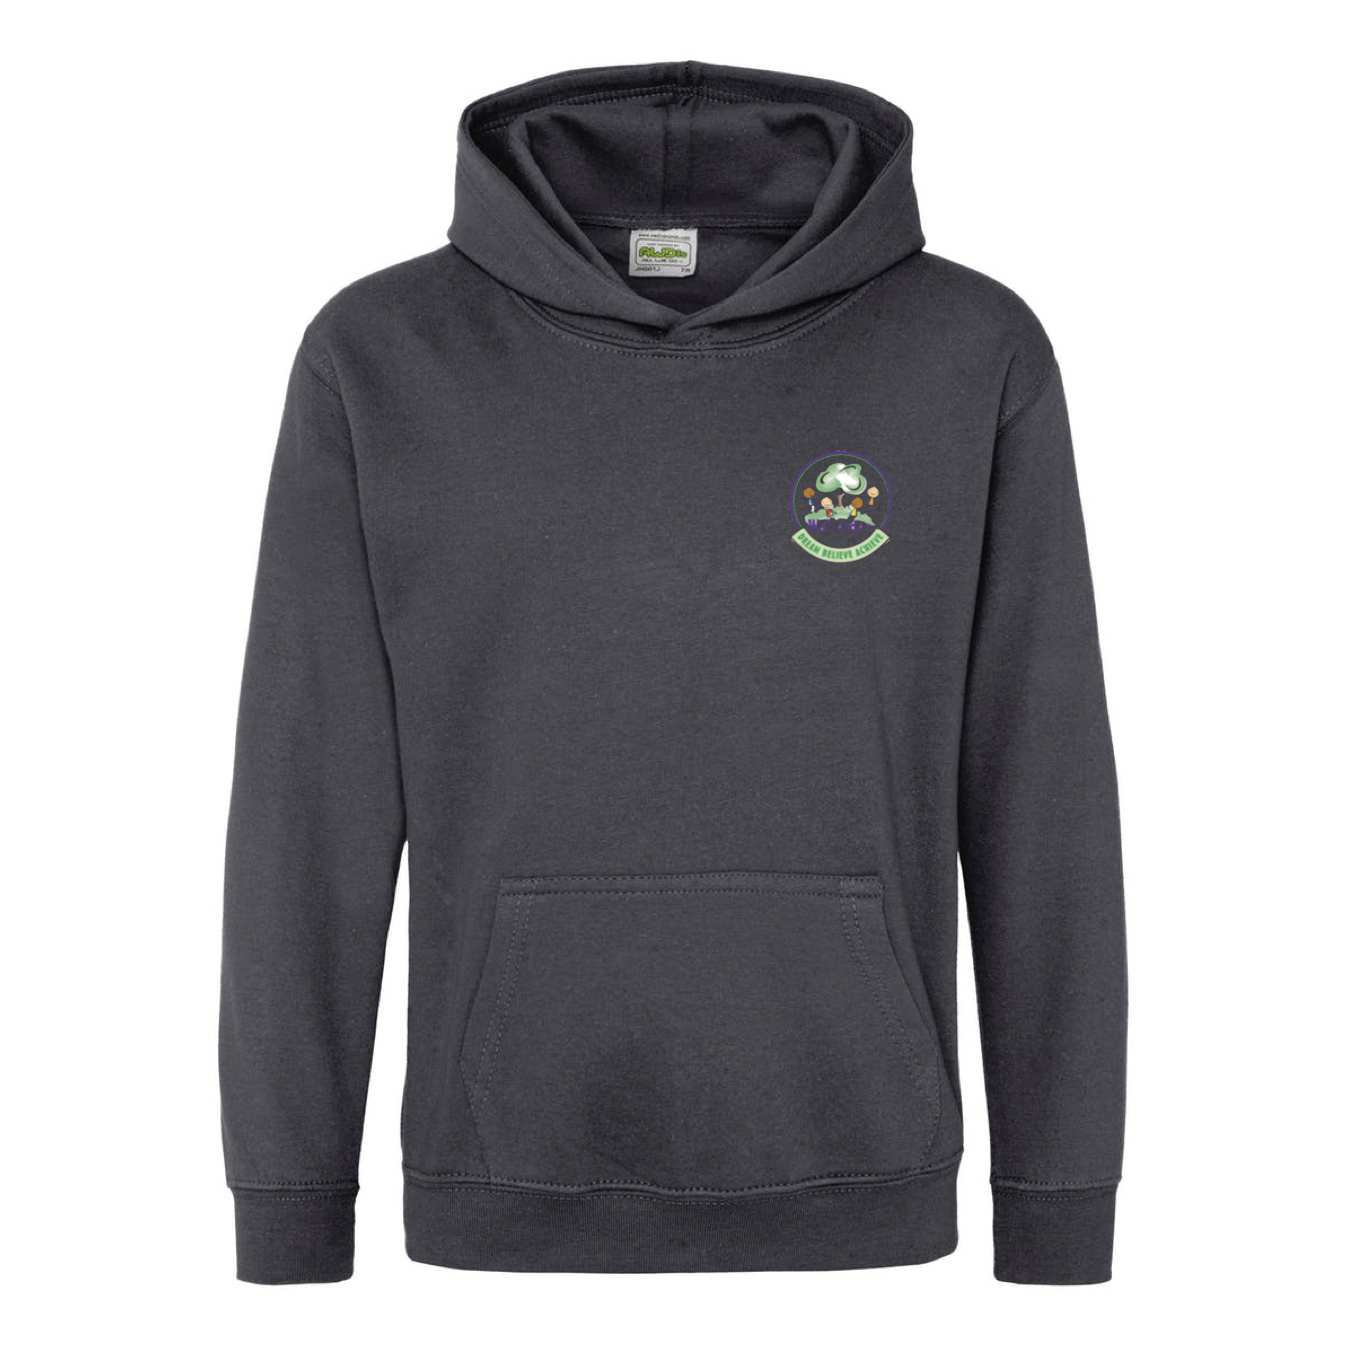 Walverden Primary School 2020 Leavers Hoodies